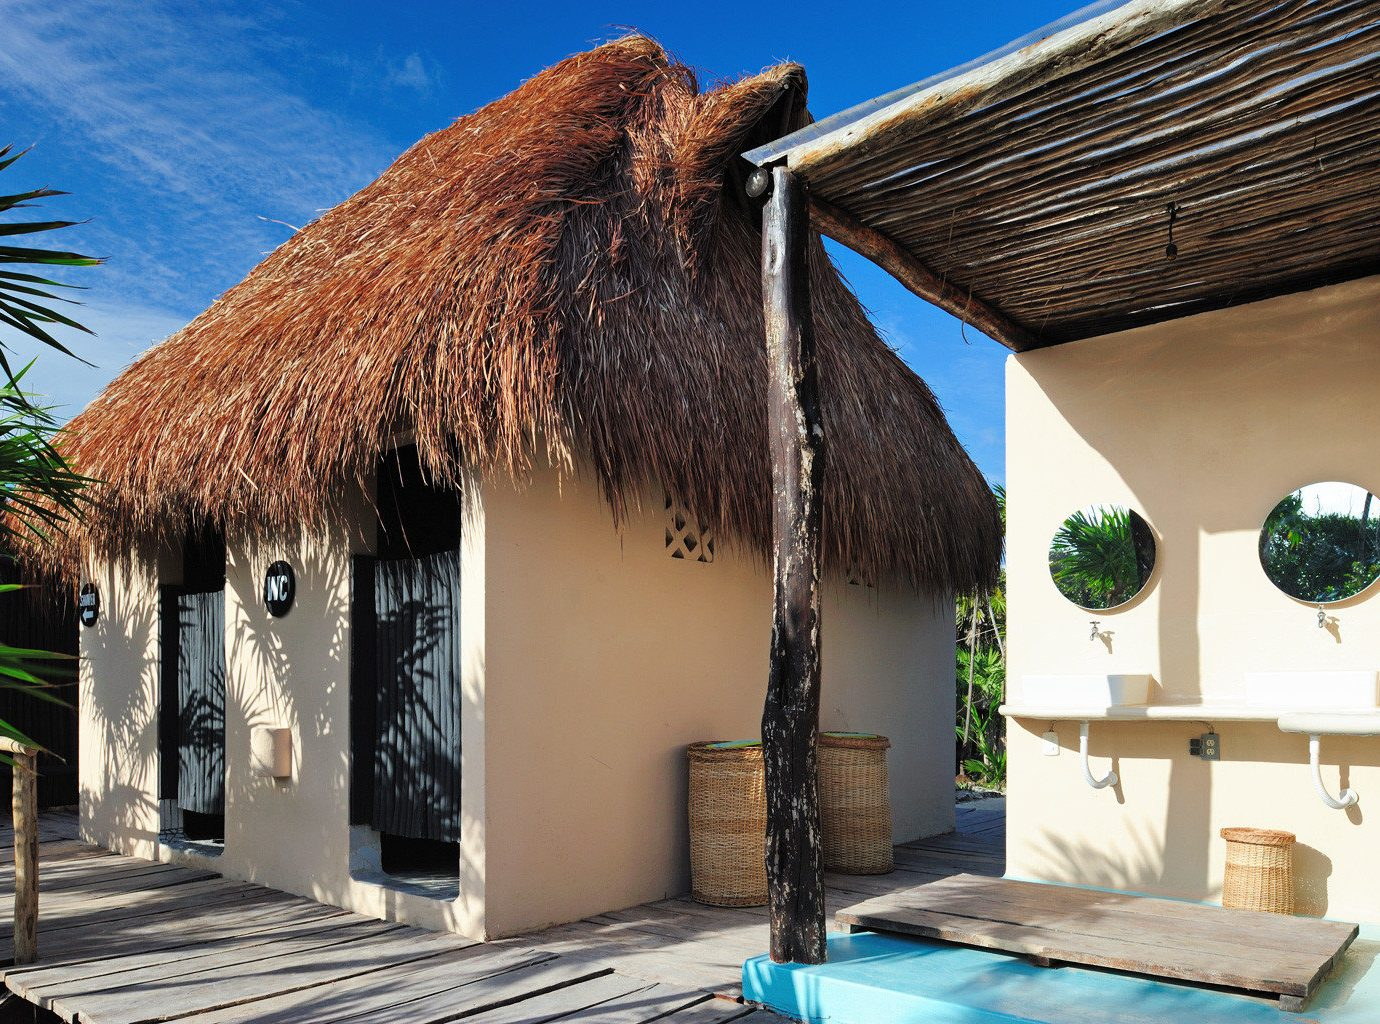 Eco Hotels Island Solo Travel Villa house property vacation Architecture estate home hut Resort thatching cottage hacienda furniture